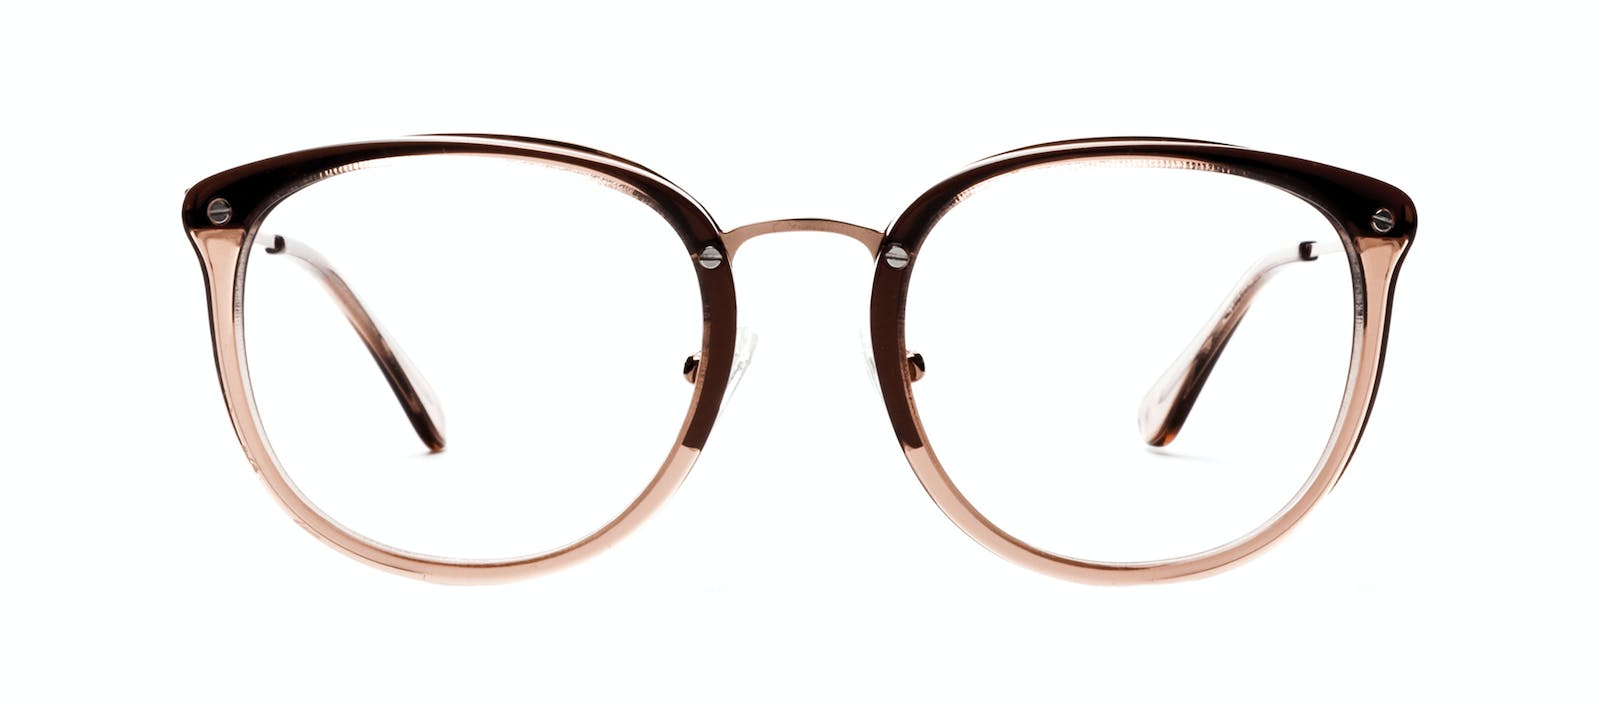 5d98d546d4 Affordable Fashion Glasses Square Round Eyeglasses Women Amaze Rose Front